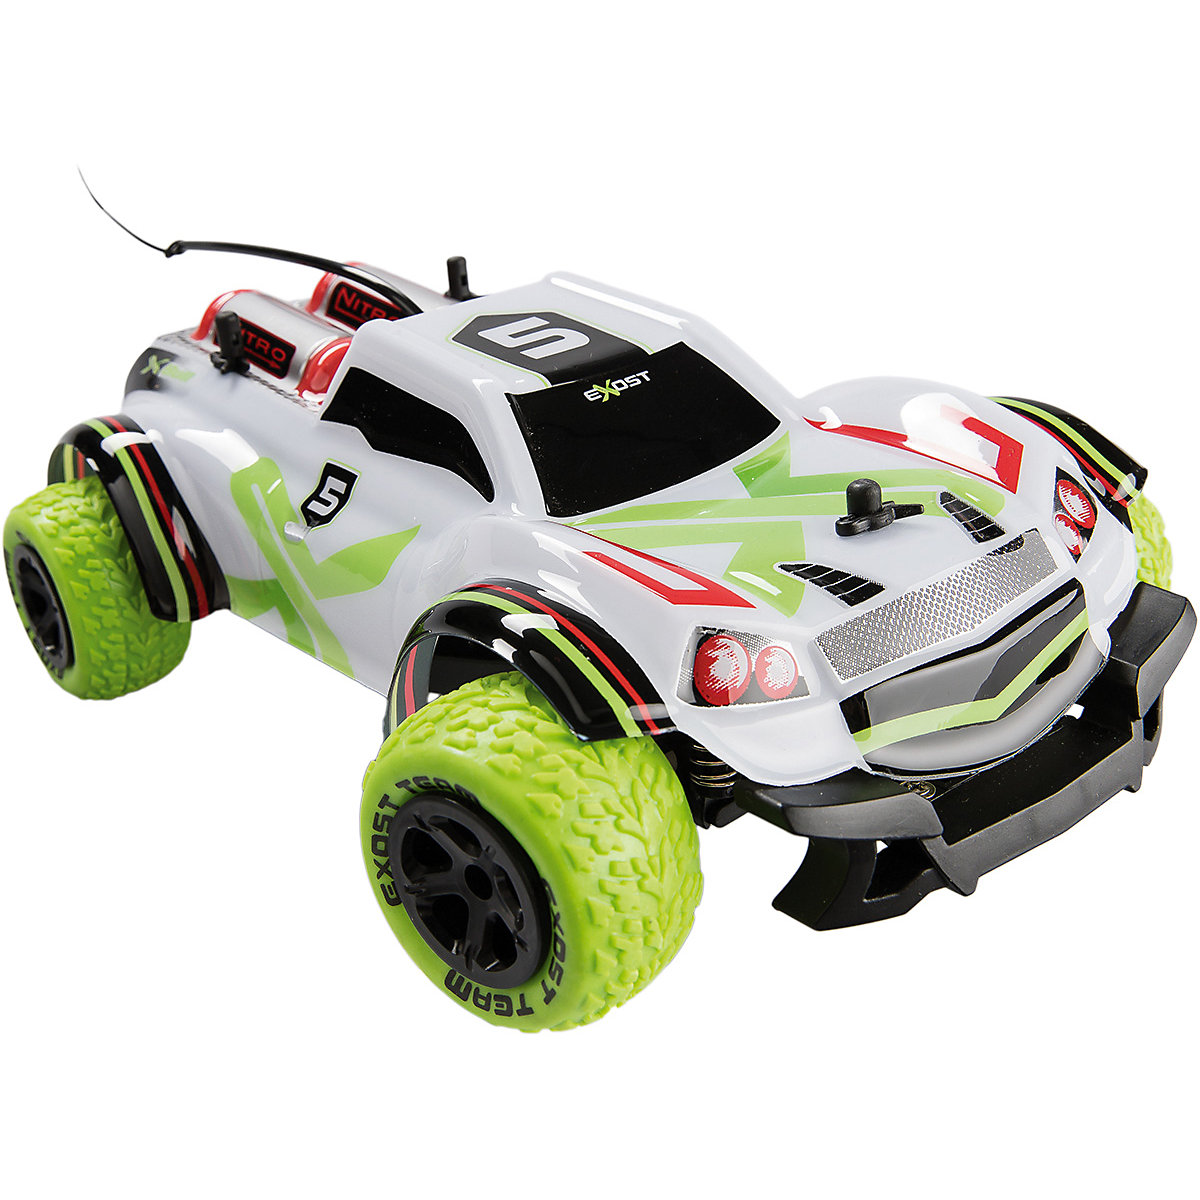 Silverlit RC Cars 10077739 Remote Control Toys radio-controlled toy games children Kids car